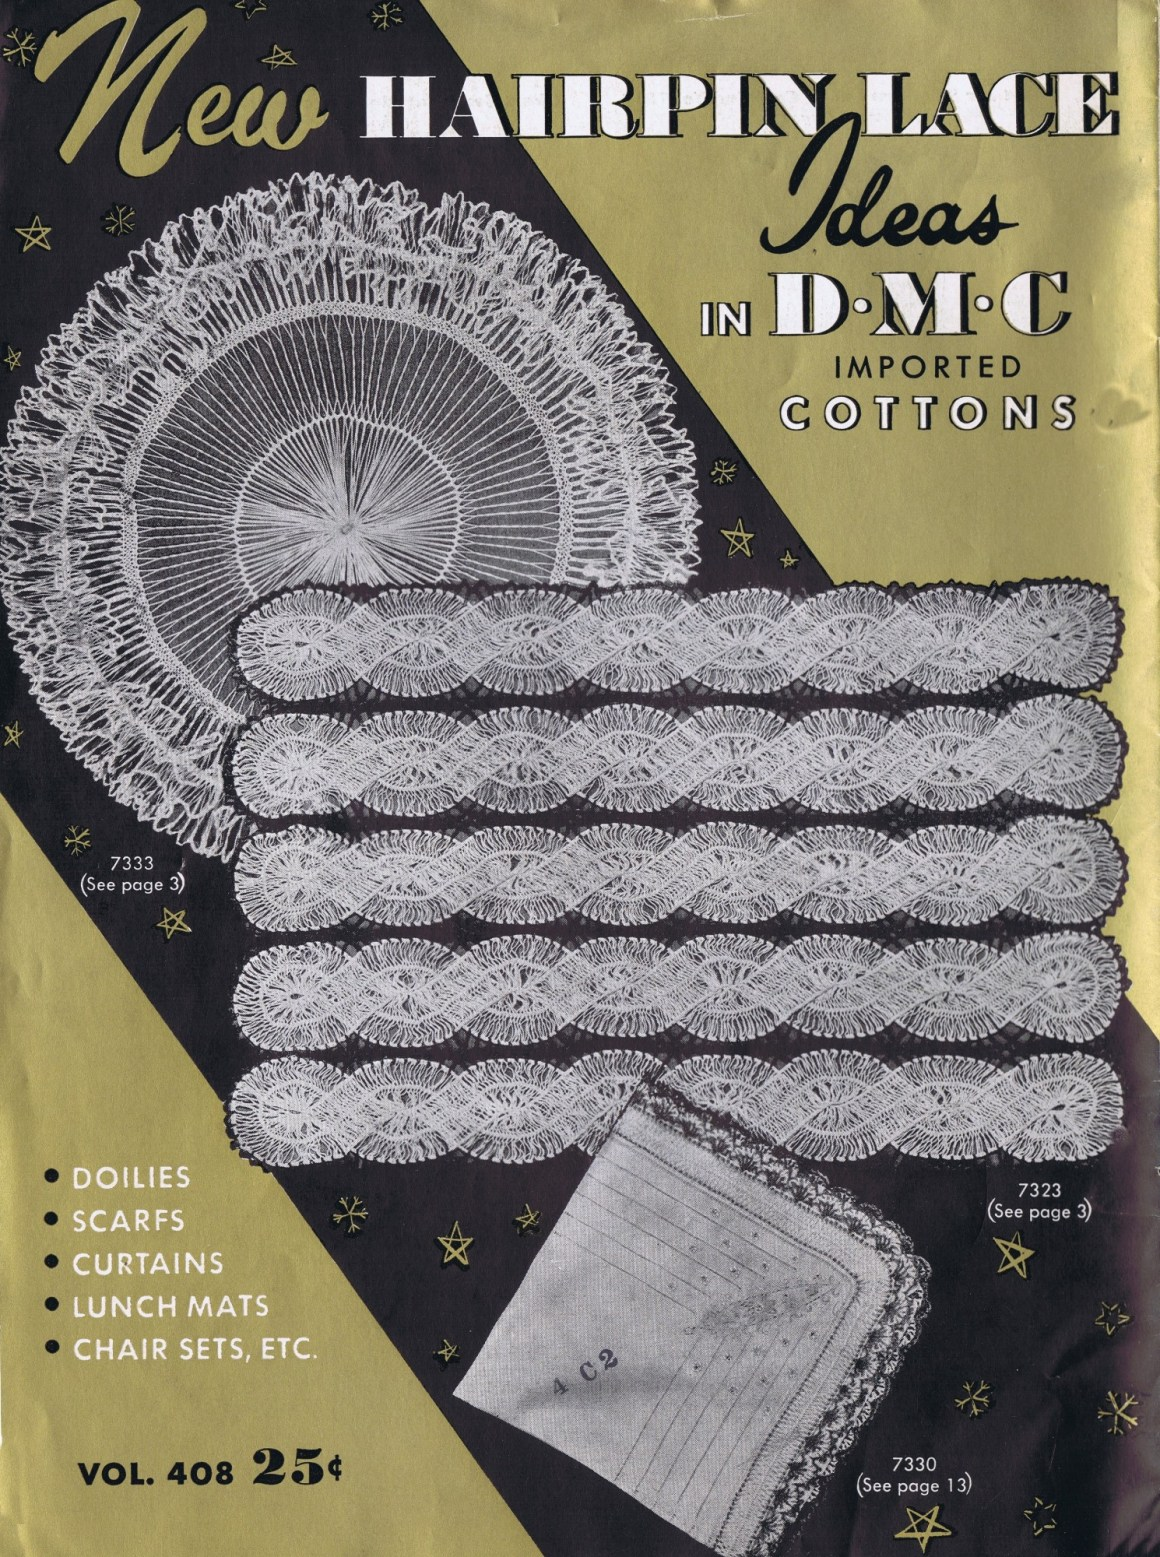 99f654eb39 Free Vintage Hairpin Maltese Lace Crochet Patterns - Vintage ...